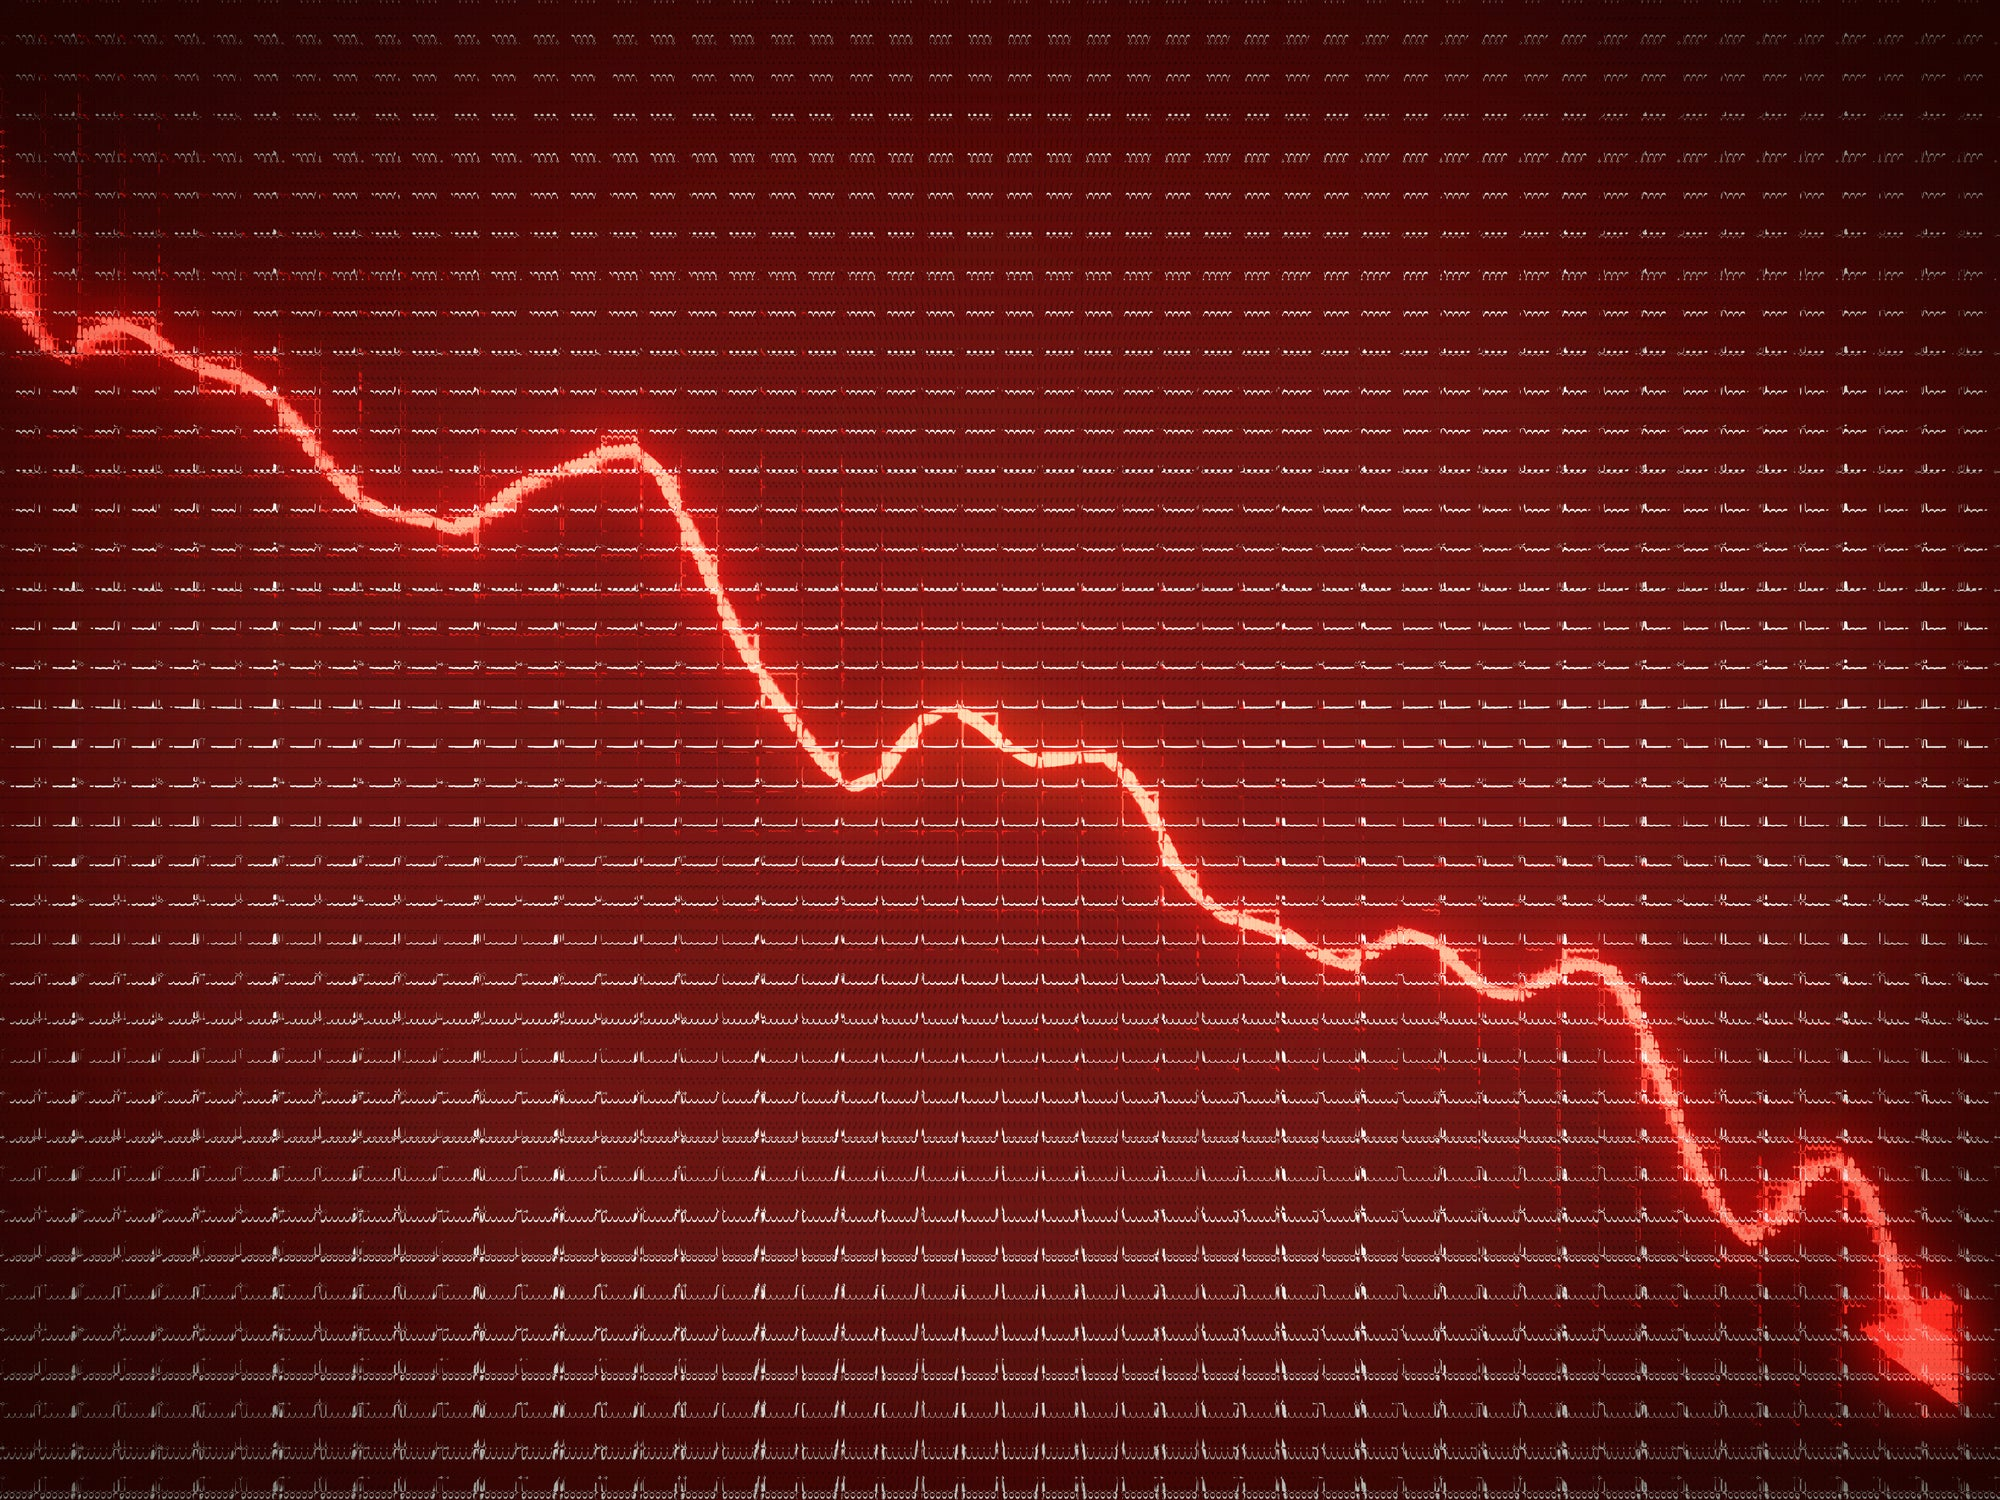 Why Plug Power Stock Dropped 7.5% Today